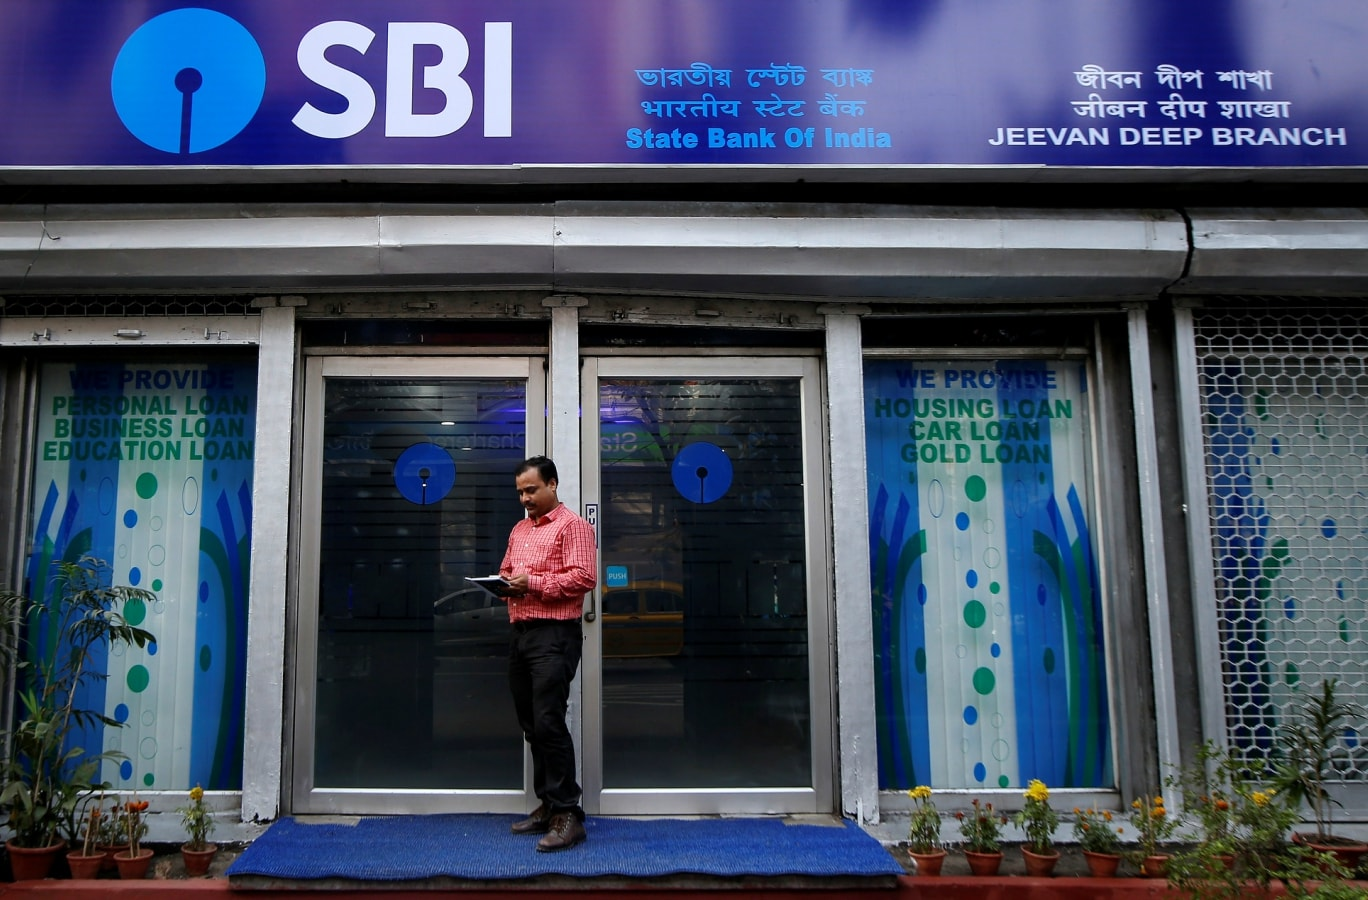 Top stocks to watch out for on May 13: SBI, L&T, Jet Airways